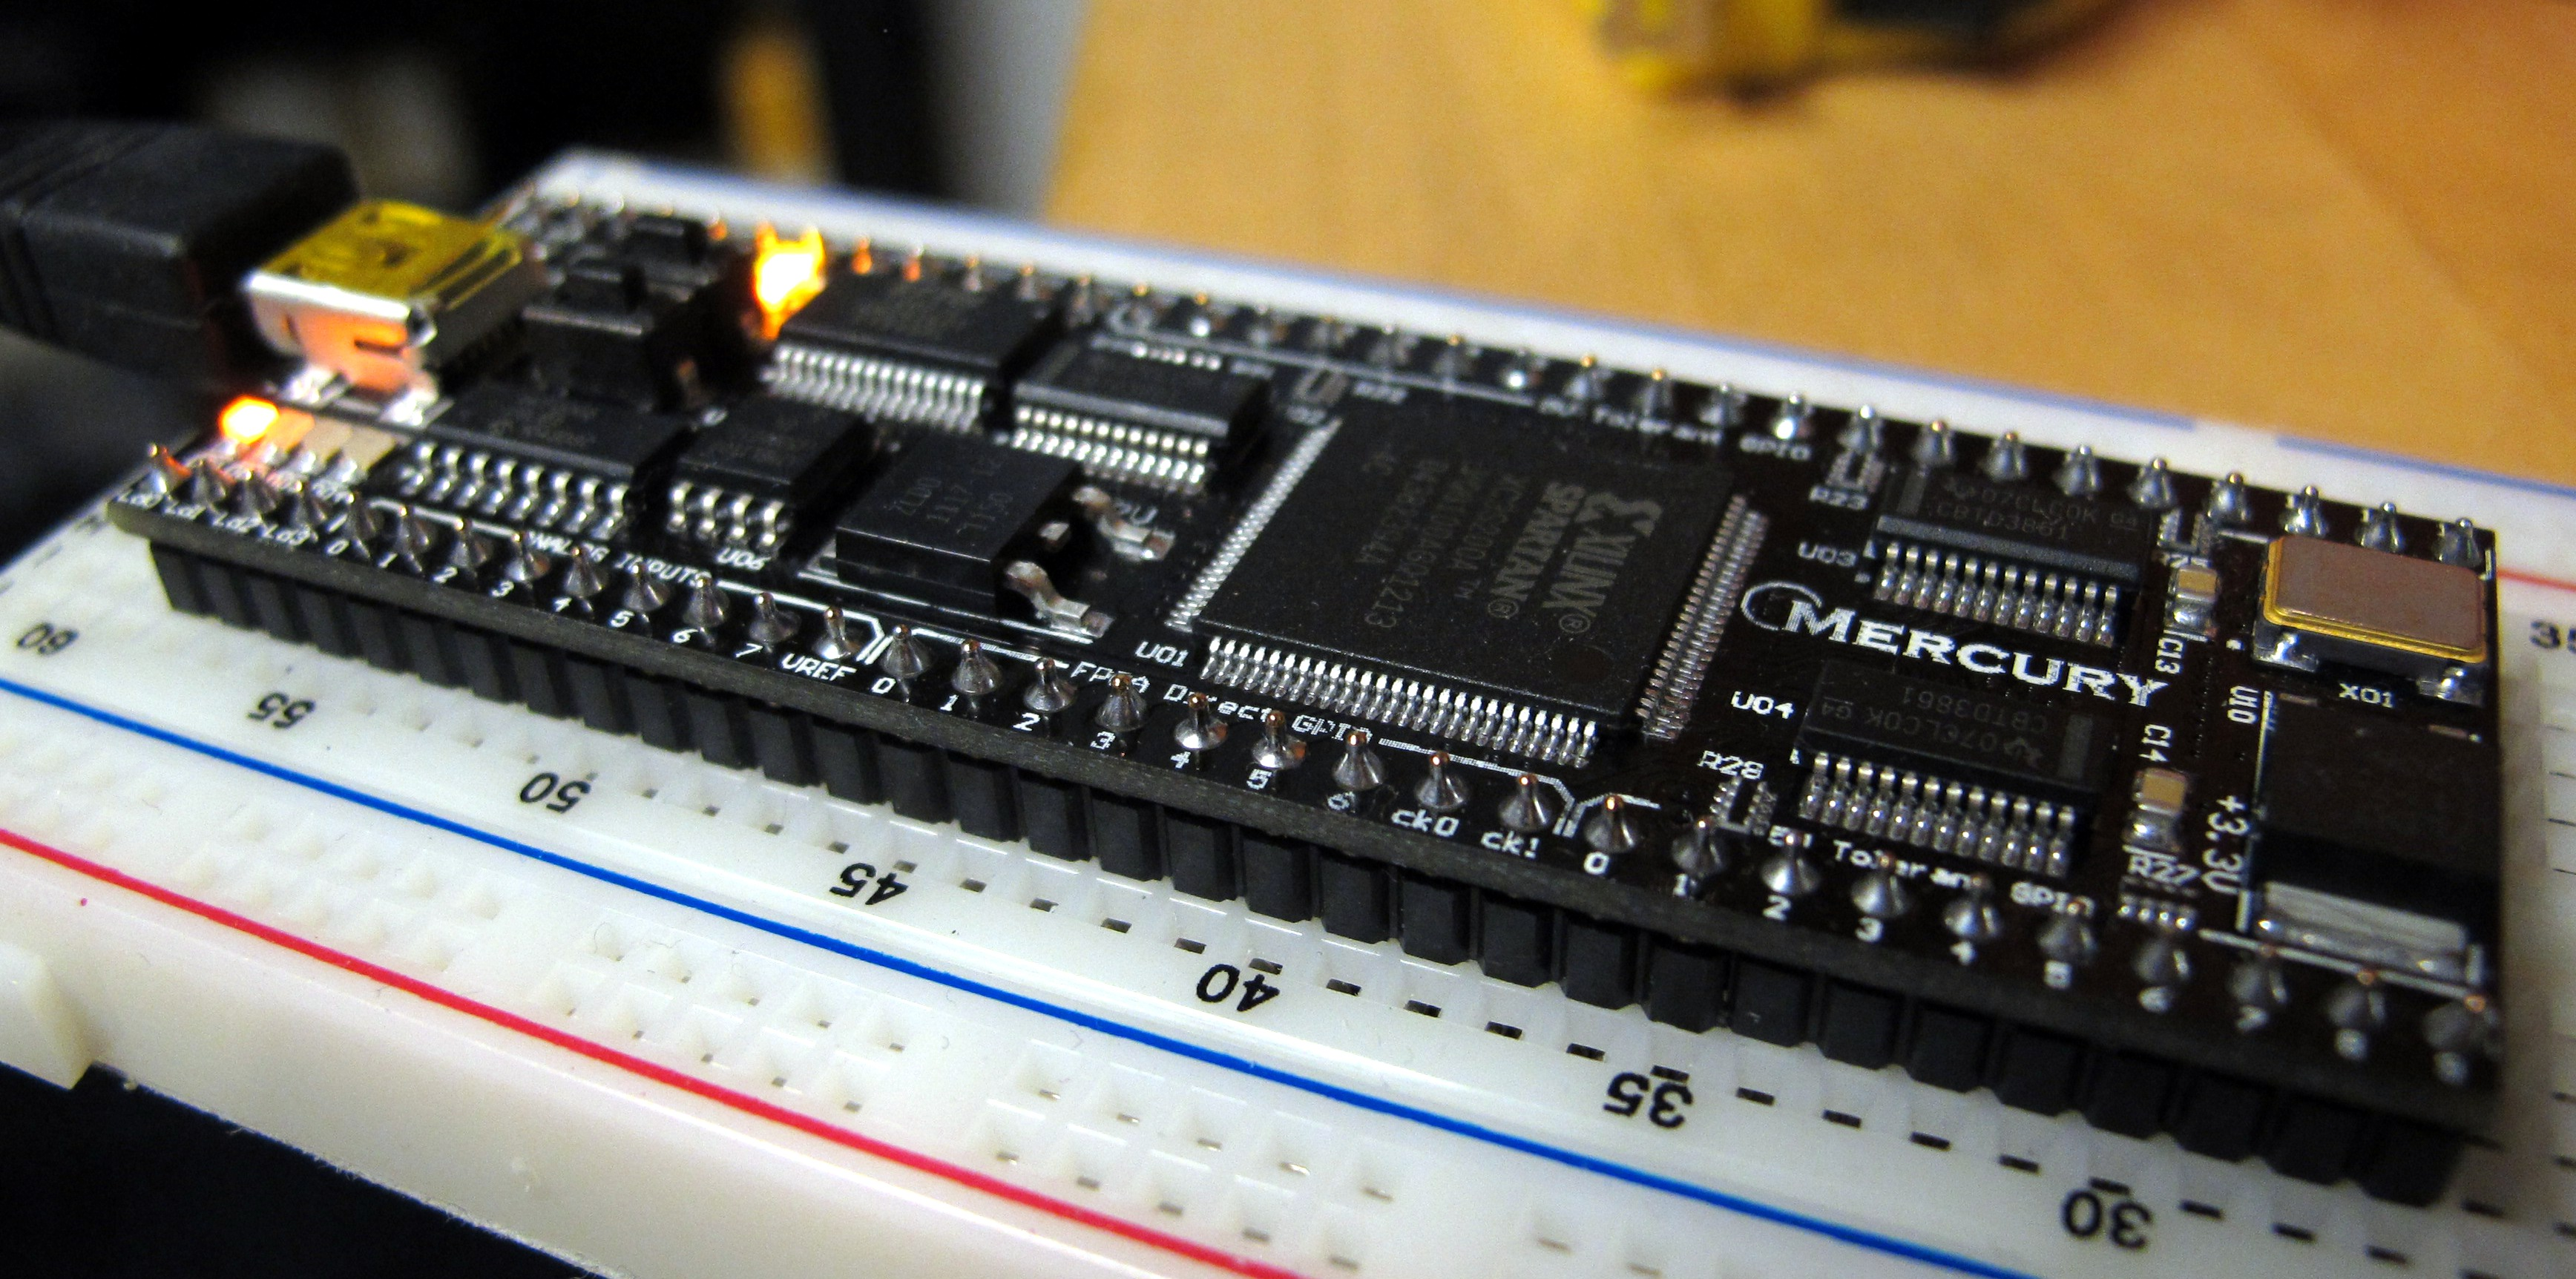 The Mercury FPGA from the side